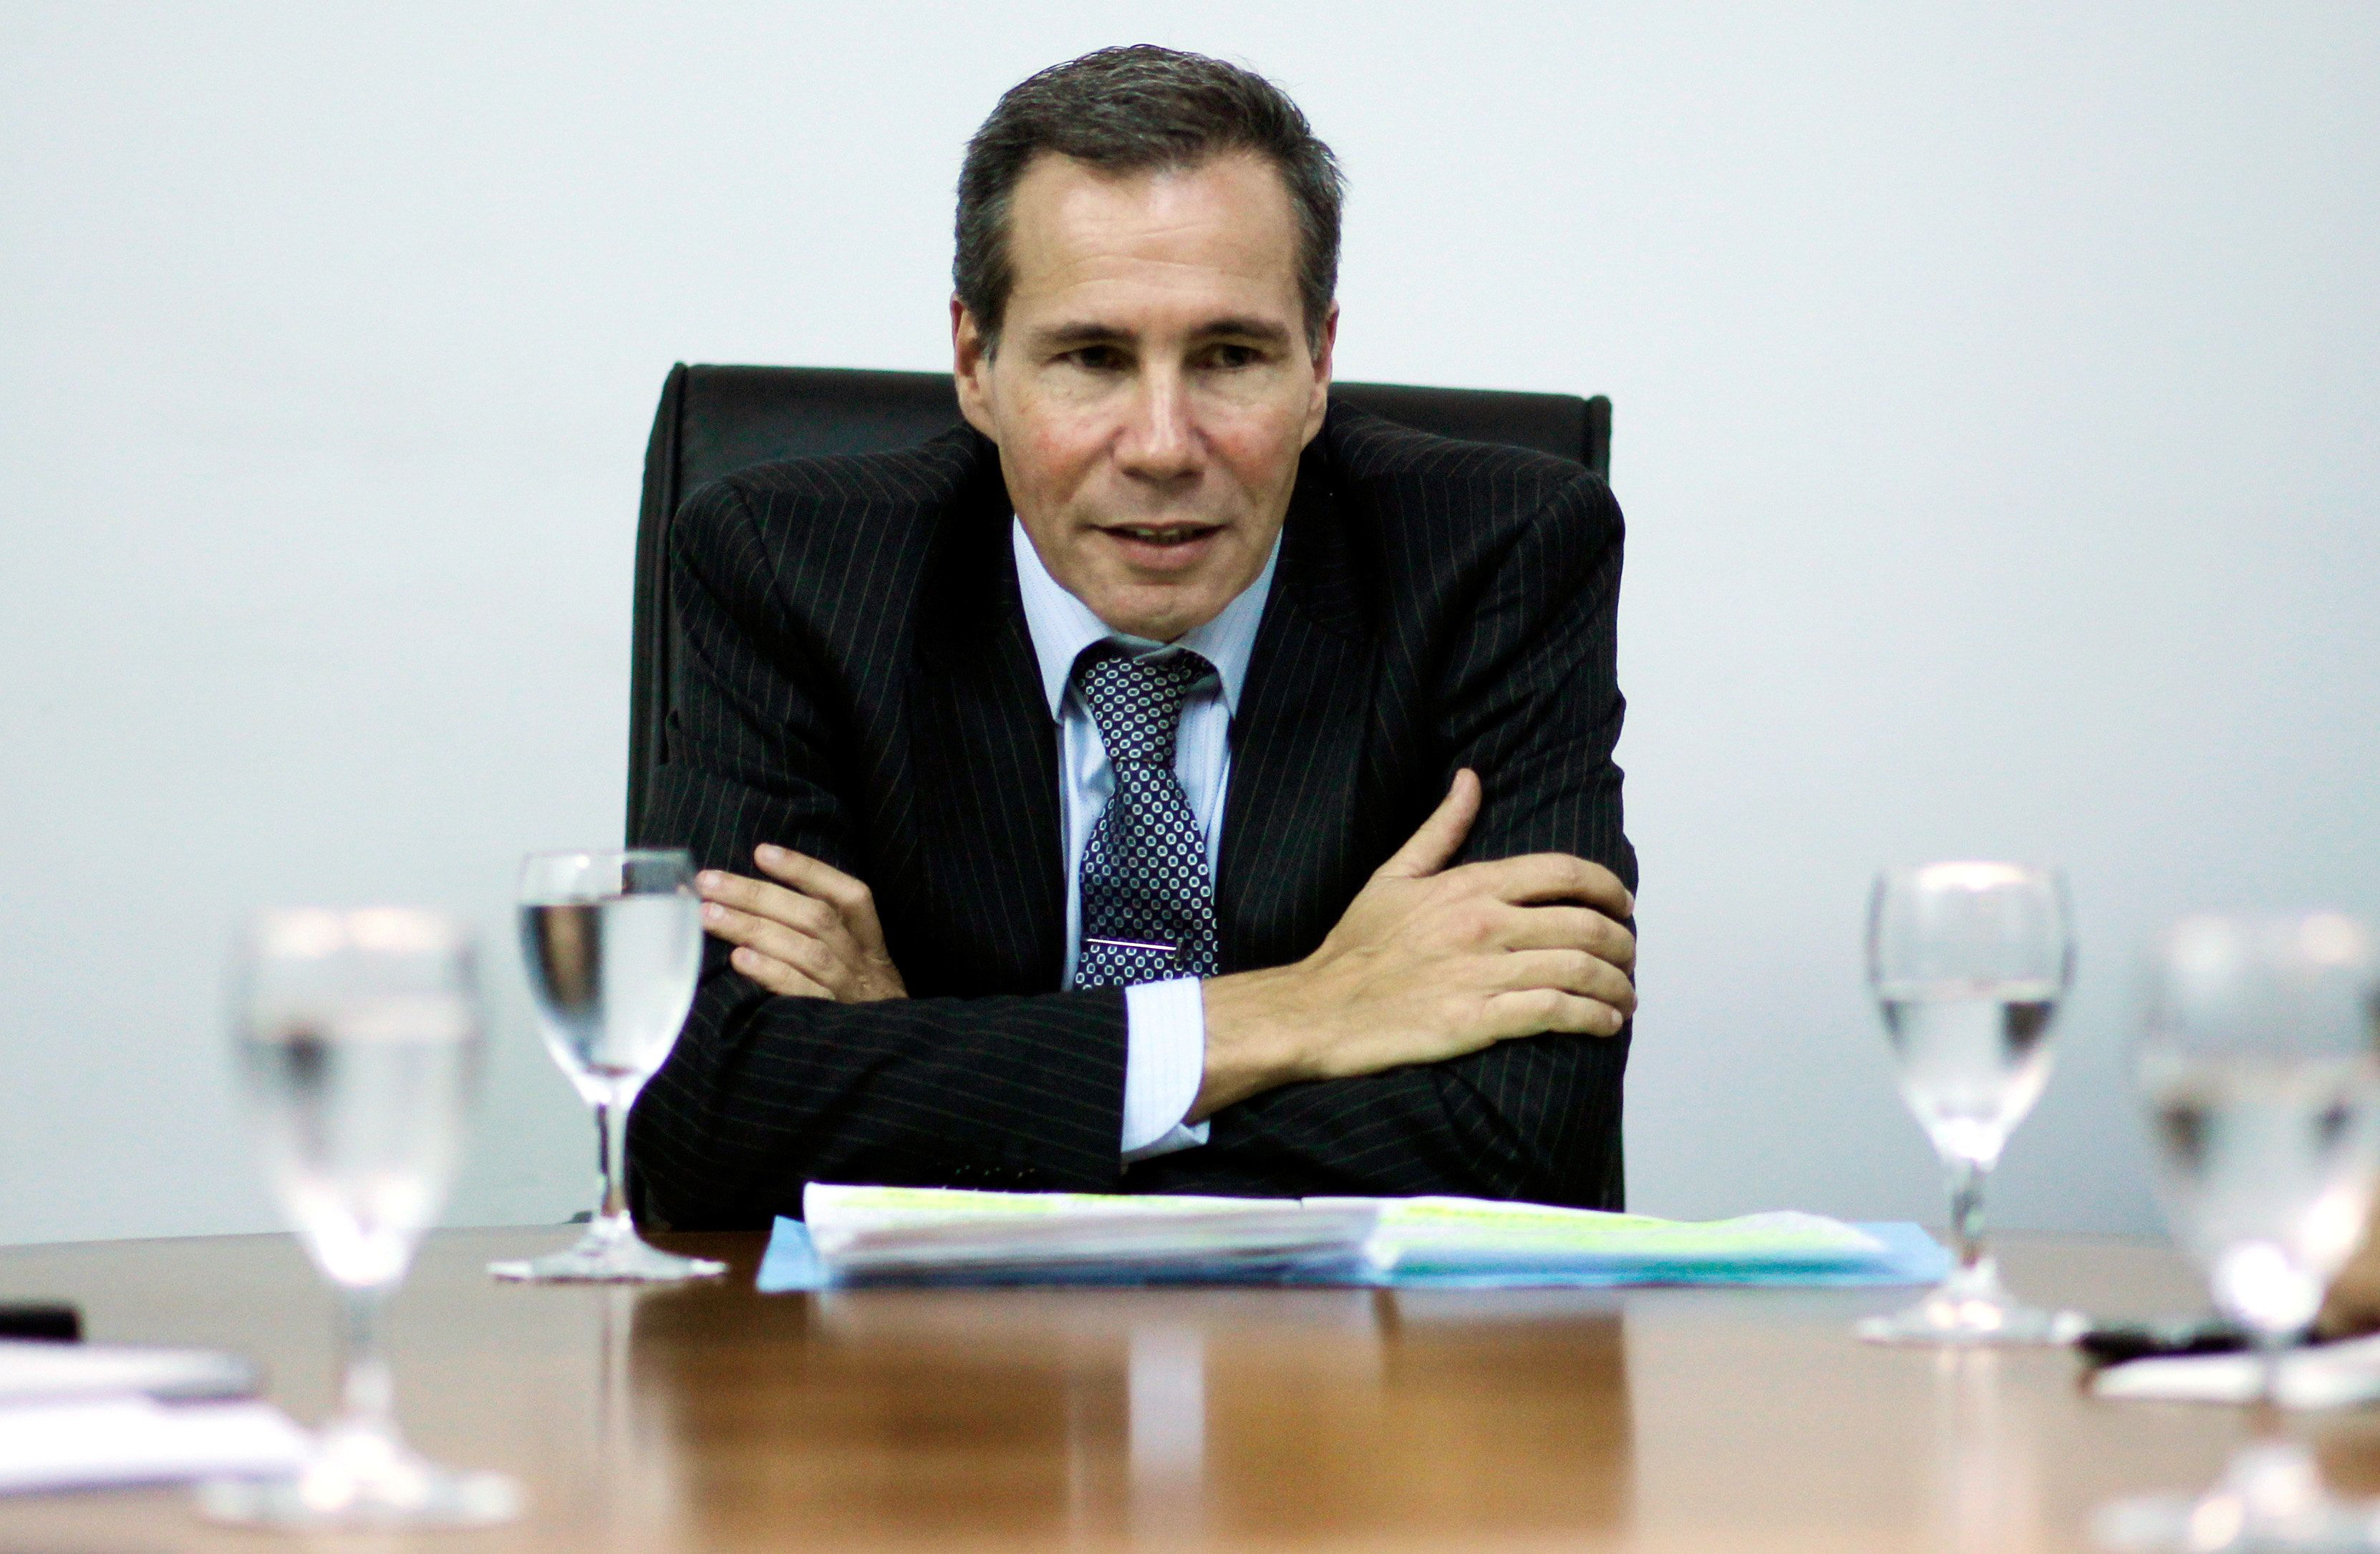 Alberto Nisman is pictured in Buenos Aires on May 29, 2013.